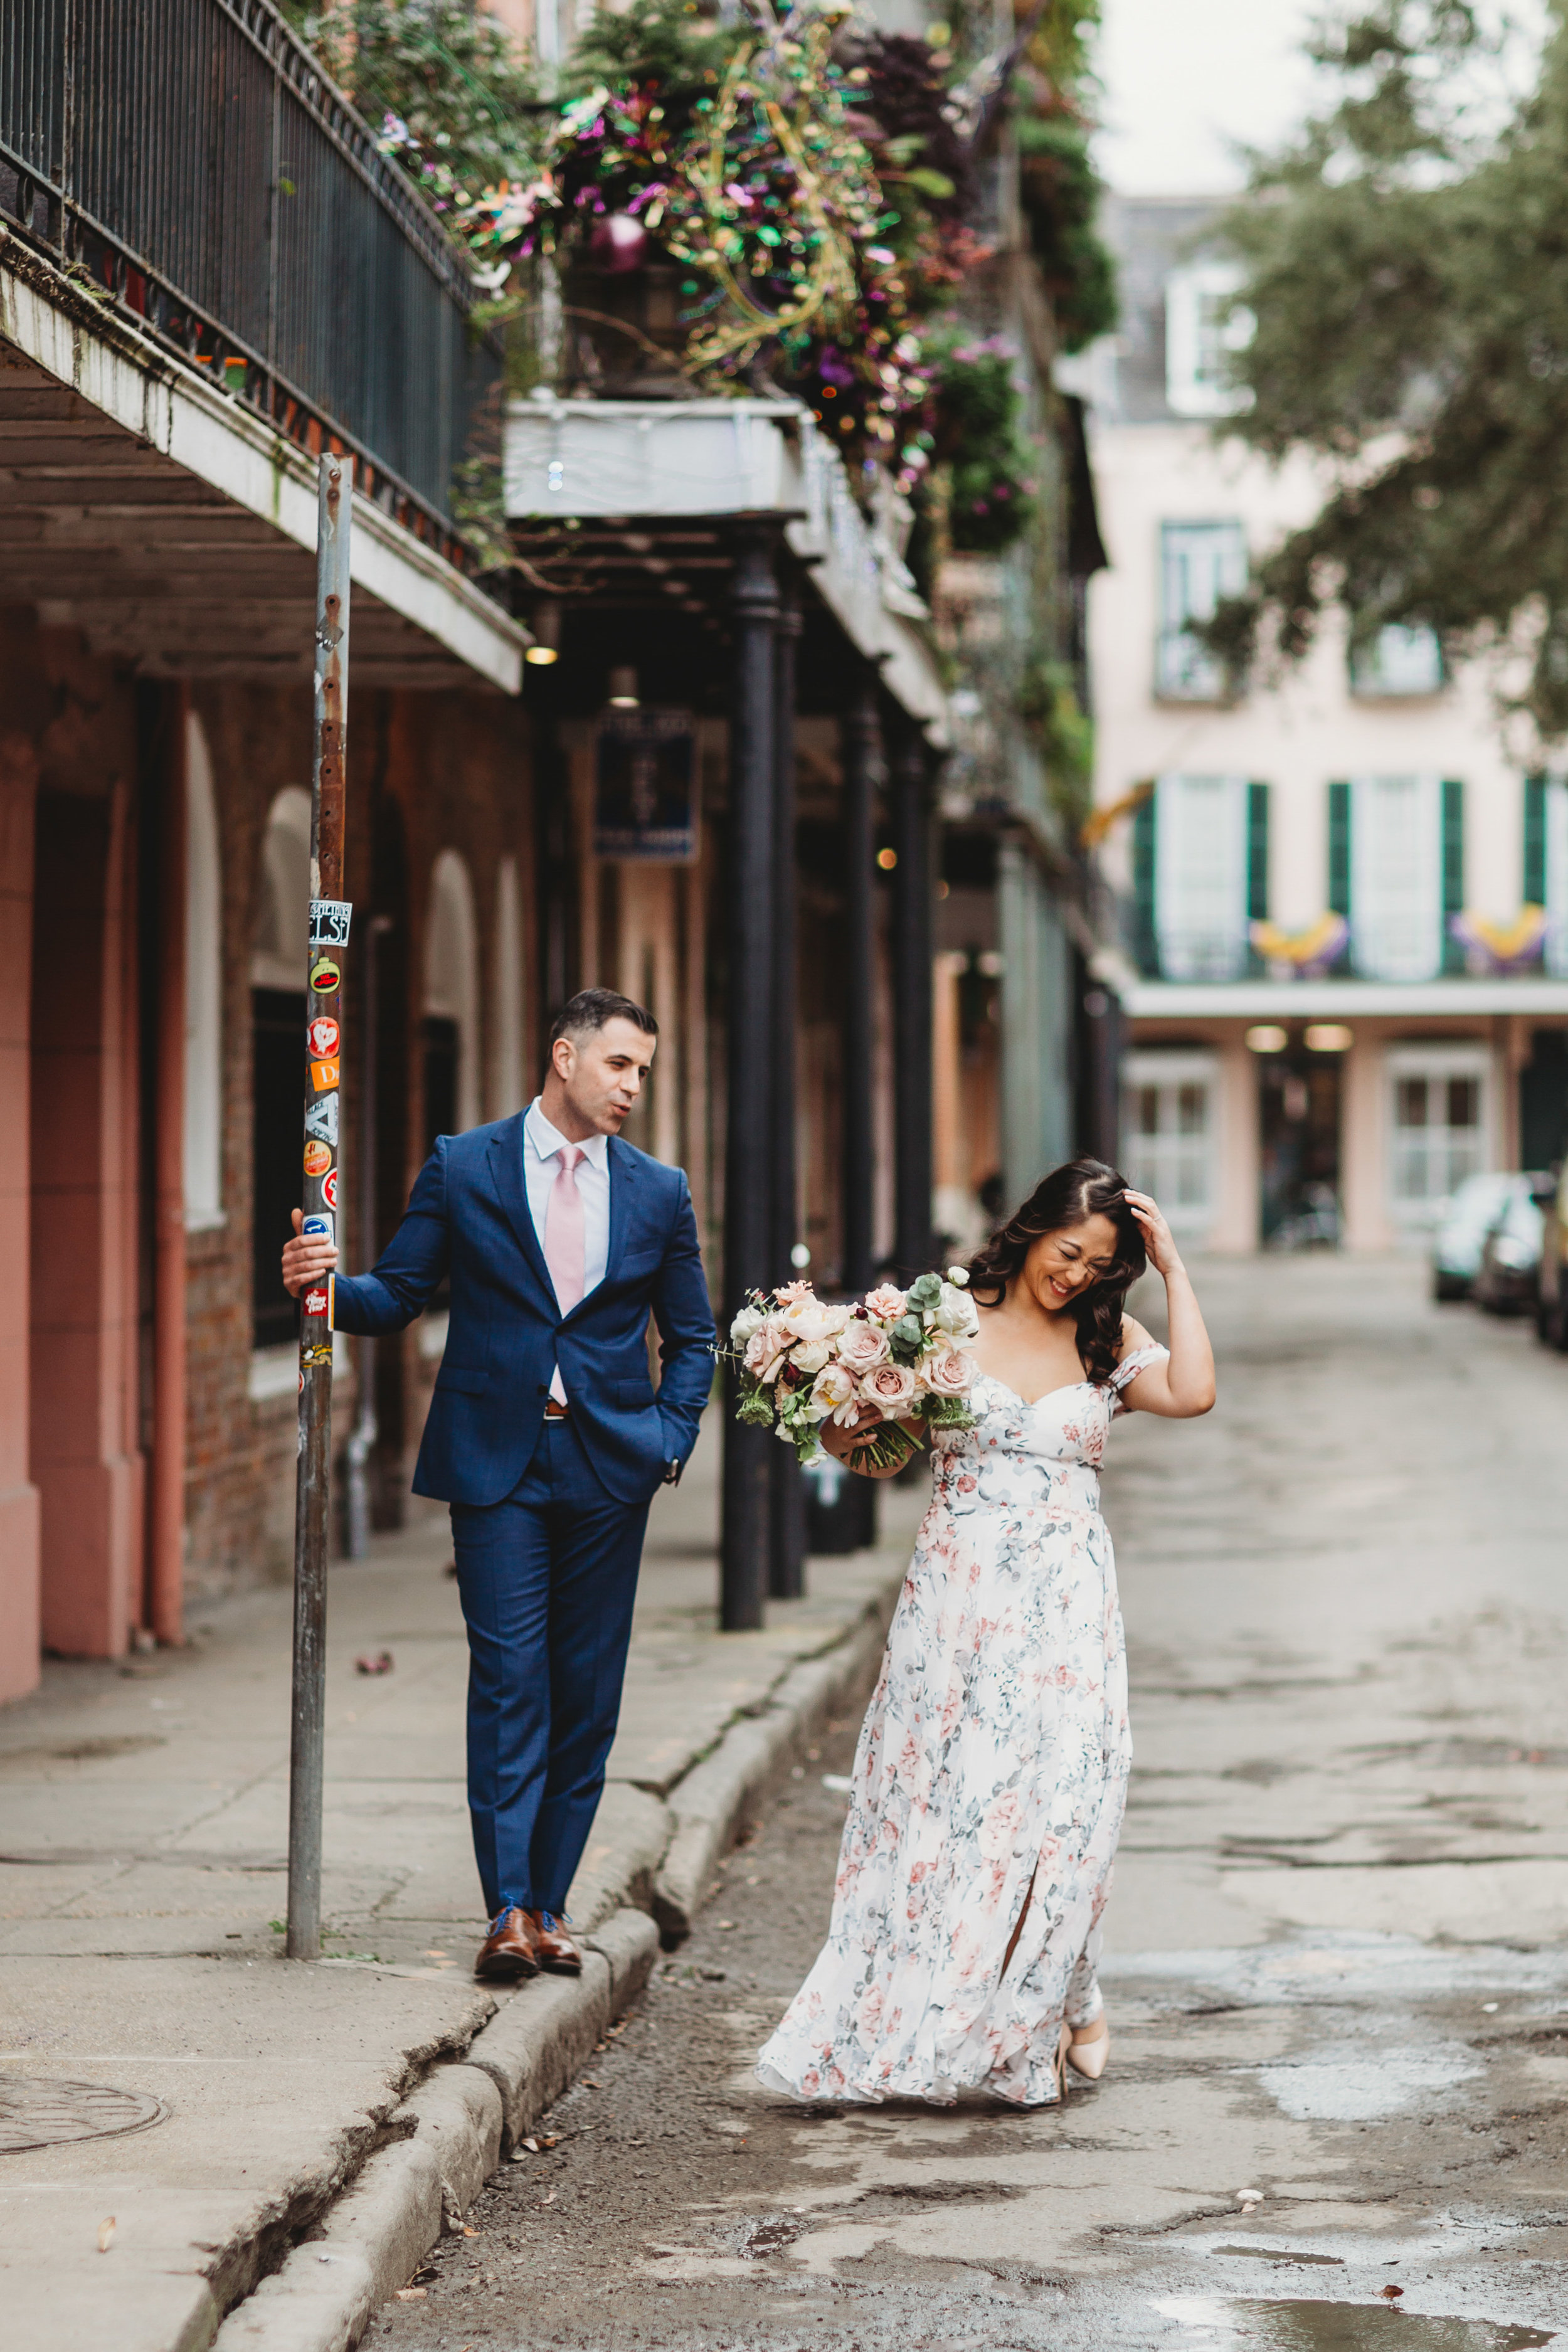 French Quarter Elopement New Orleans Wedding Photographer Ashley Biltz Photography19.jpg